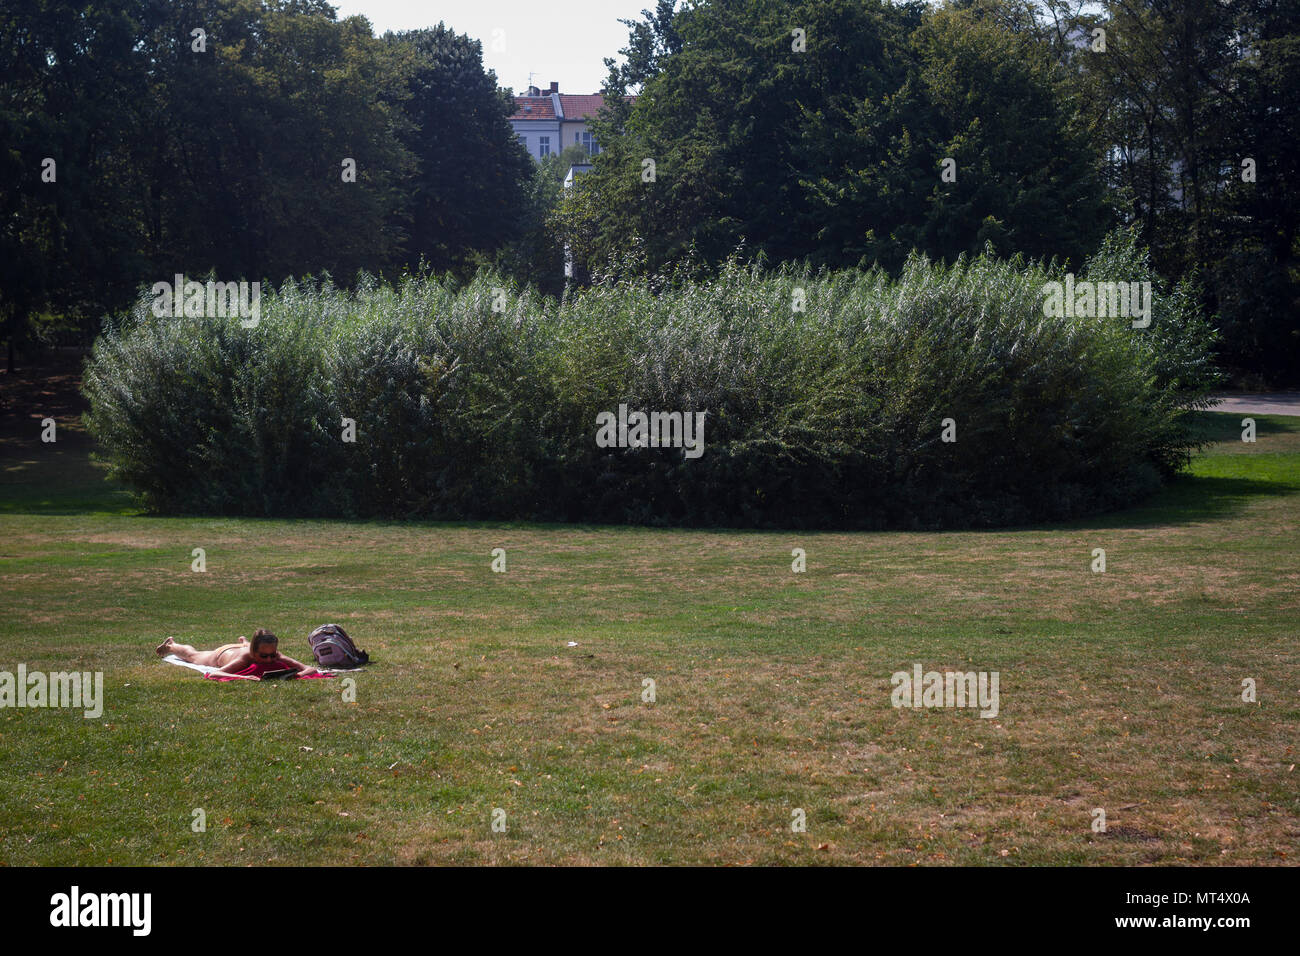 A reading woman sunbathes in Rathaus Schoneberg Park, Berlin, Germany. - Stock Image